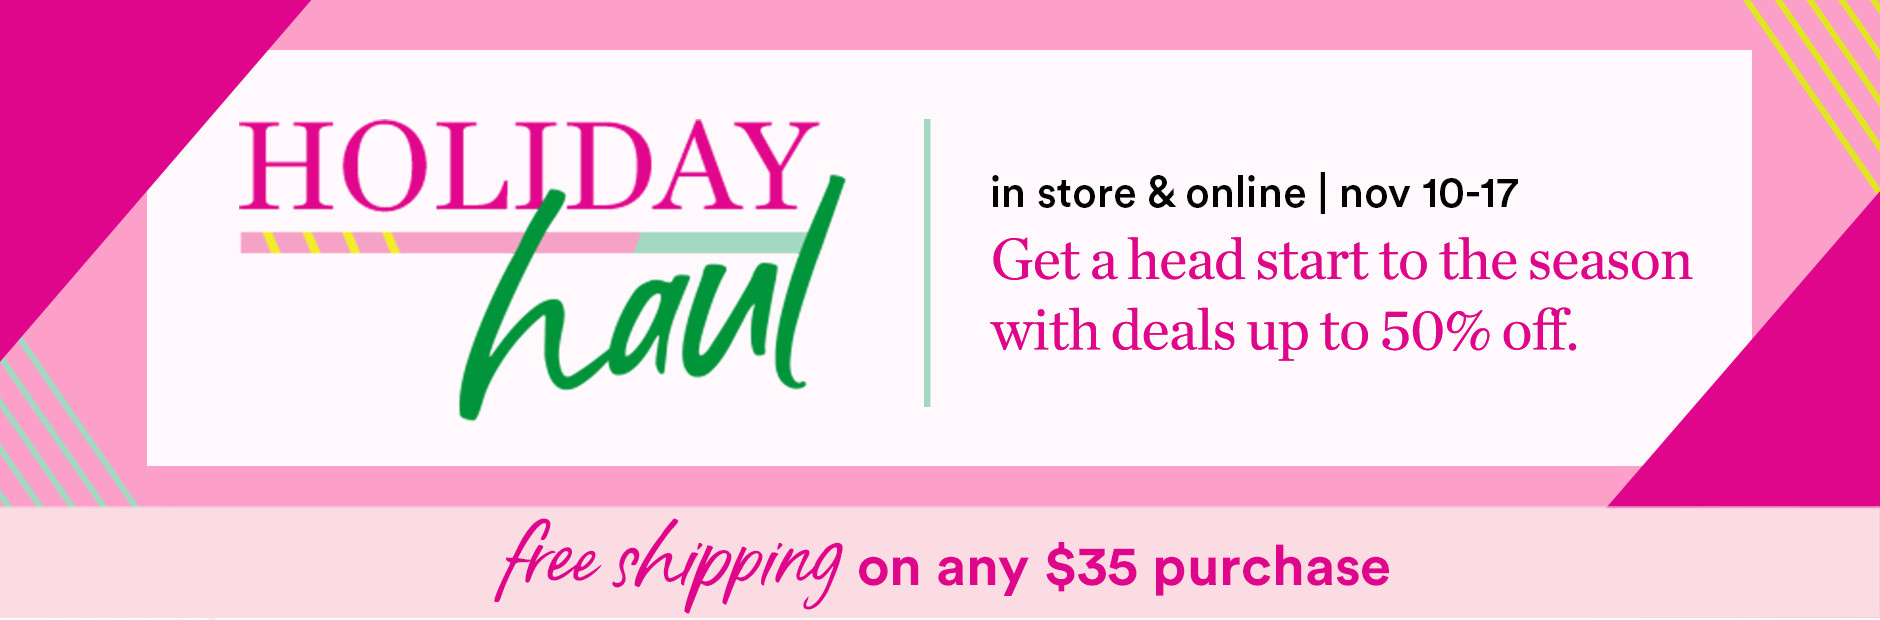 Get a head start to the season with deals up to 50% off in store and online November 10th - 16th at Ulta Beauty. Plus free shipping on any $35 purchase.